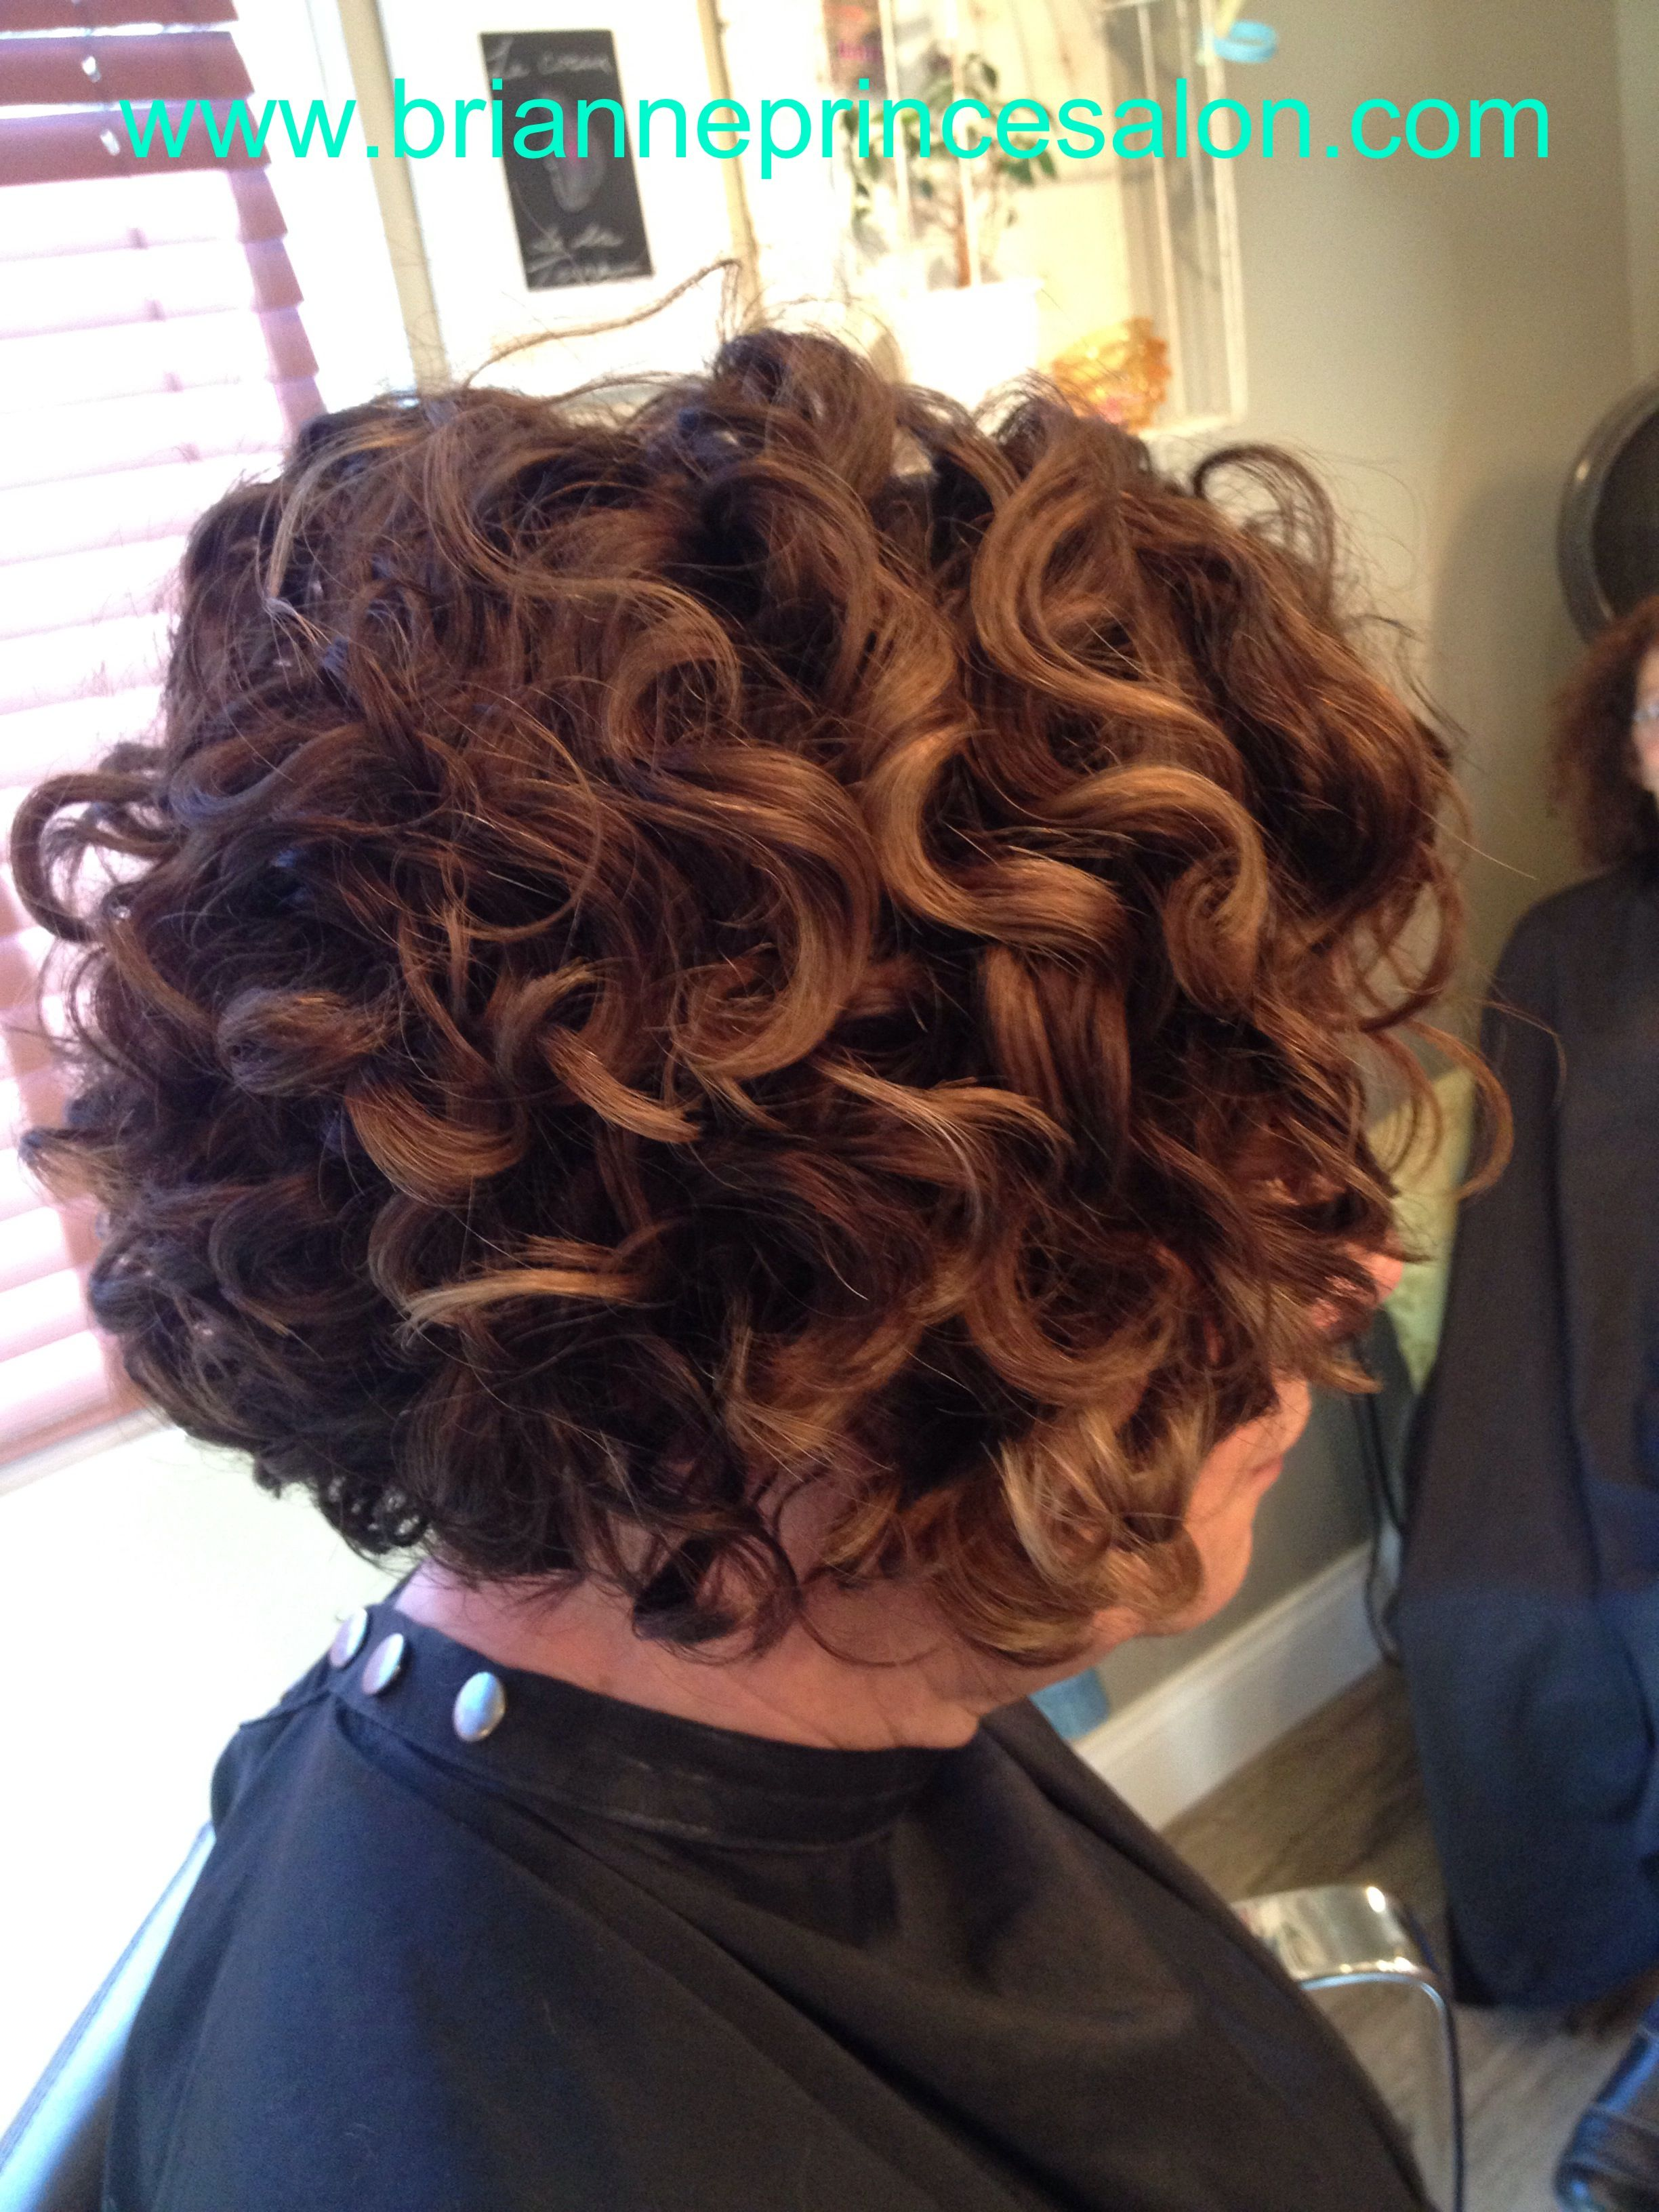 Pin By Brianne Prince On Hair Inspiration Curly Hair Styles Short Curly Hair Hair Styles